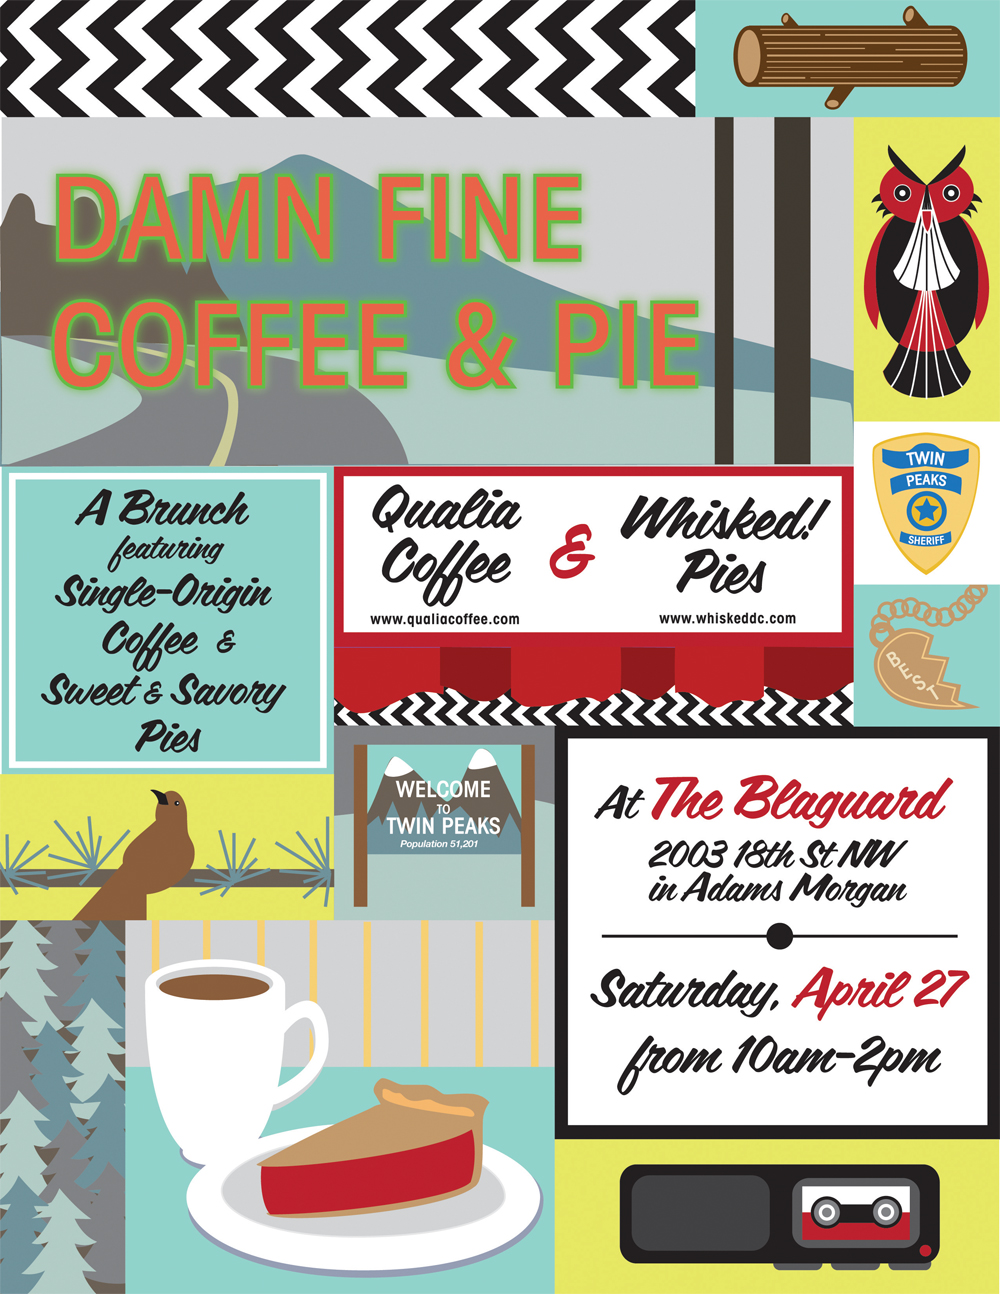 Damn Fine Coffee & Pie illustrated invitation by Washington DC graphic designer Cherry Blossom Creative on Fortique